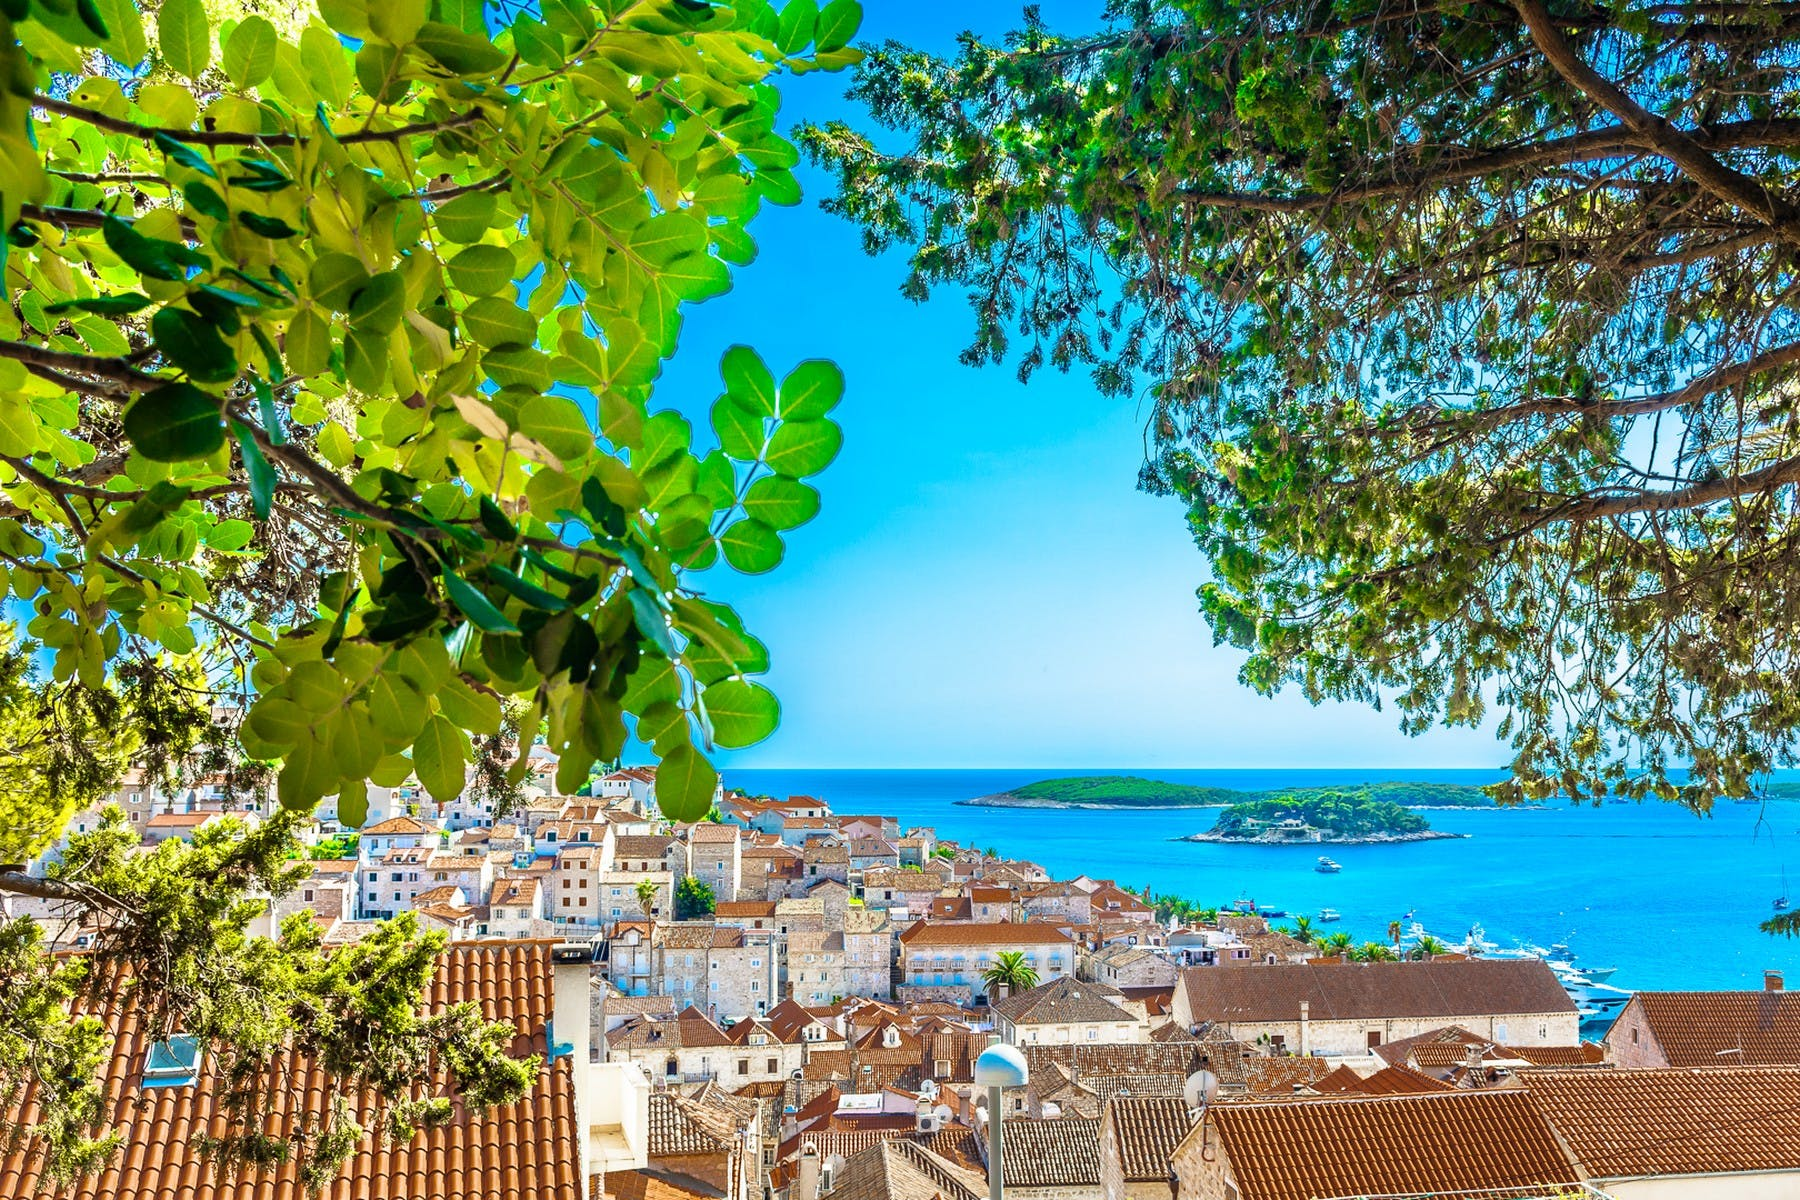 View of red roofs and clear blue sea of city of Hvar